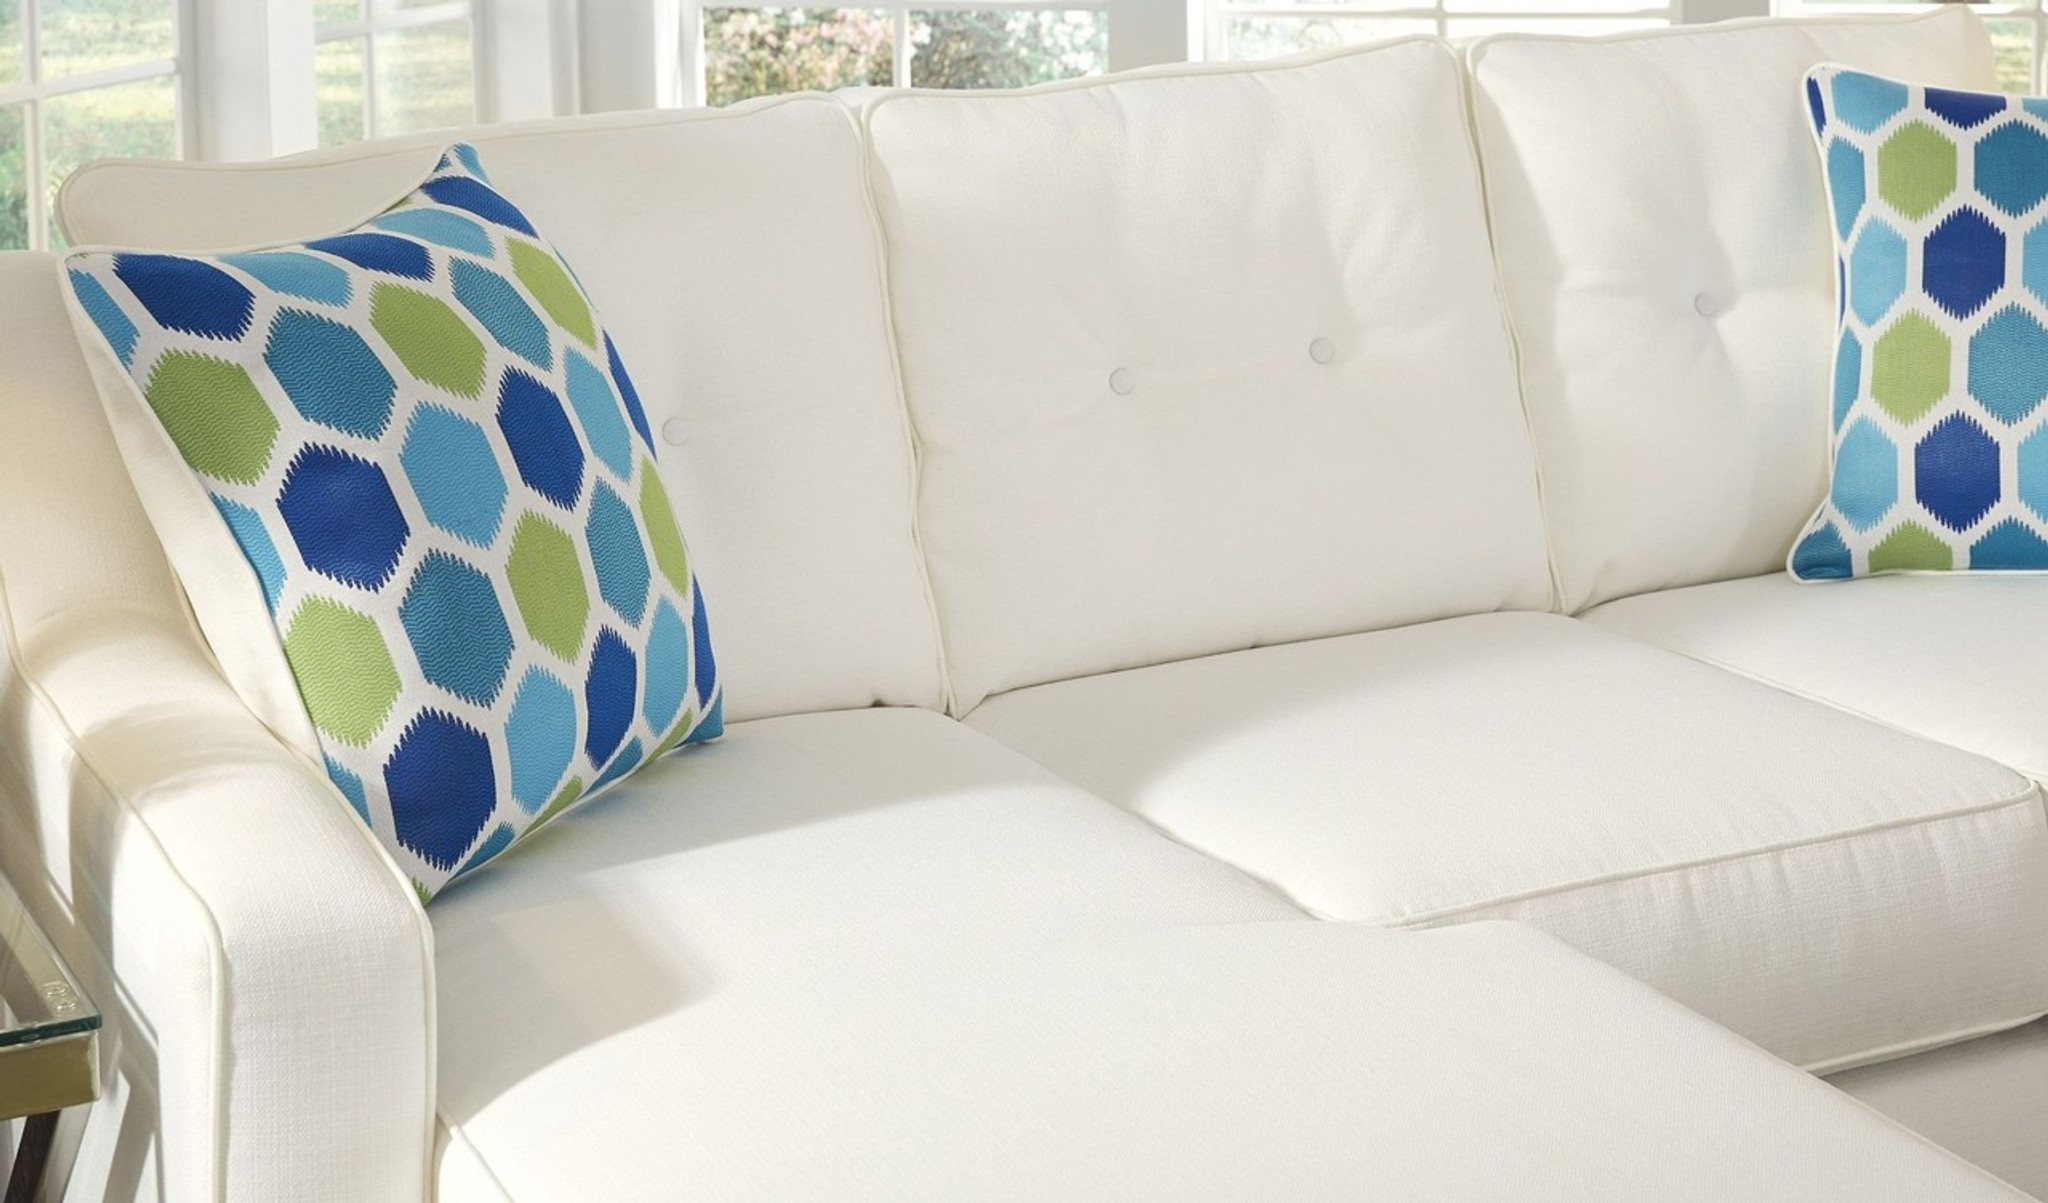 Brilliant Aldie Nuvella White Collection Queen Sofa Chaise Sleeper Home Interior And Landscaping Ologienasavecom